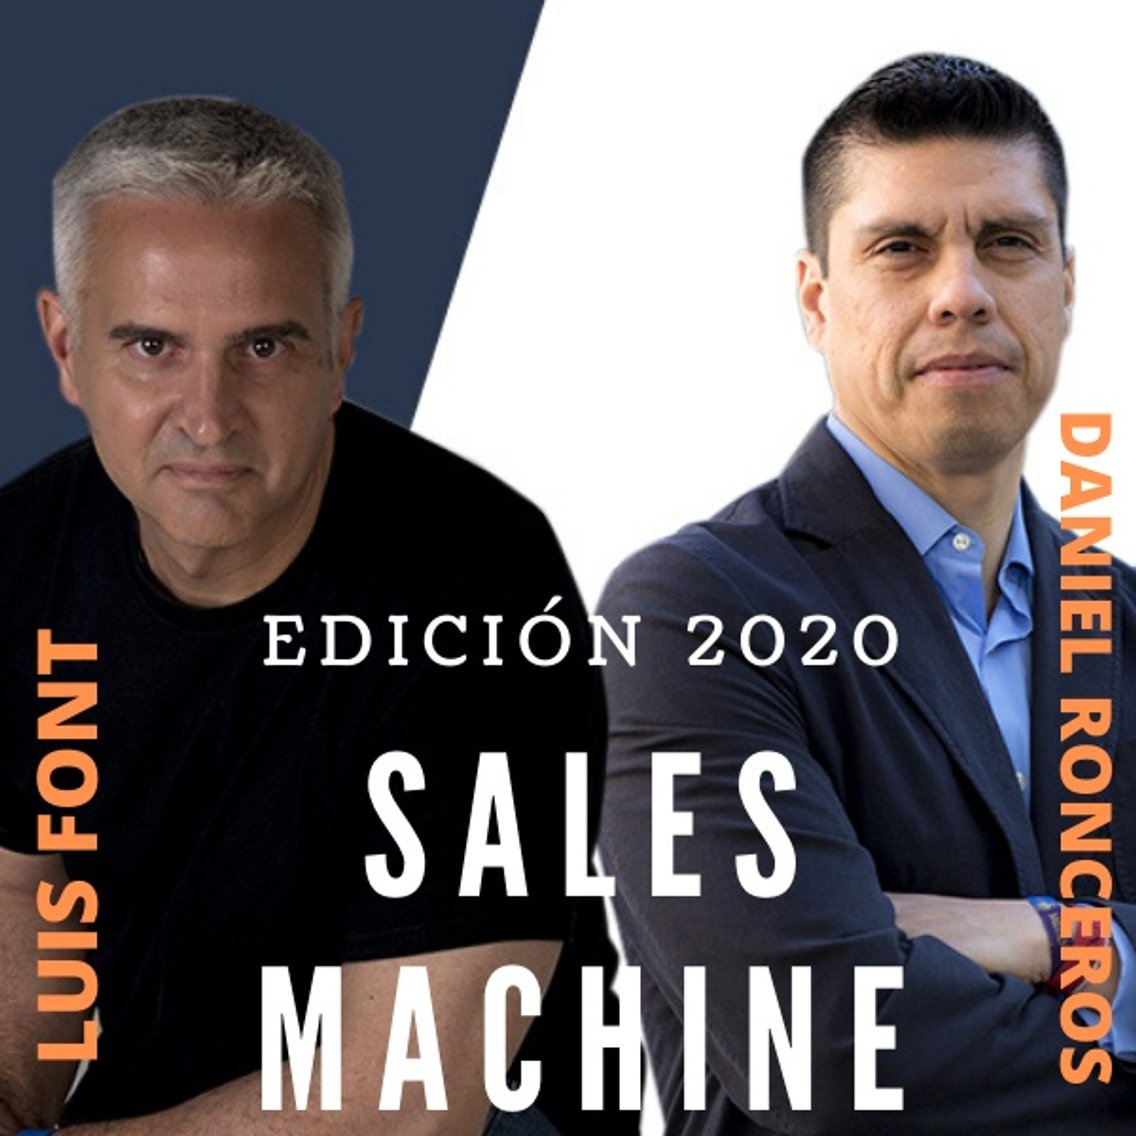 Sales Machine - Cover Image